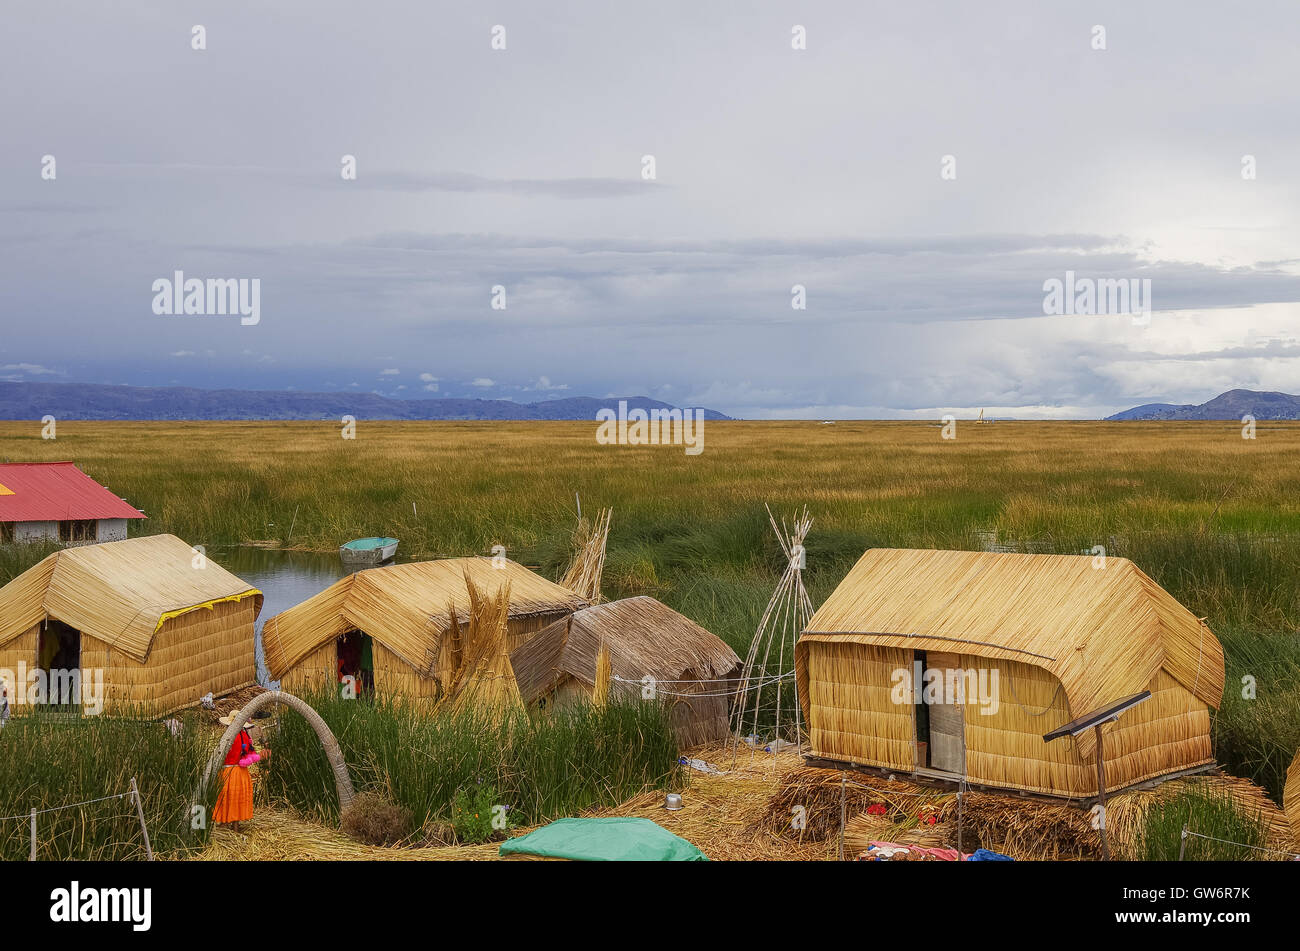 Titicaca, Peru, January 4, 2015 -  Traditional houses of local people in Uros islands on Lake Titicaca. - Stock Image